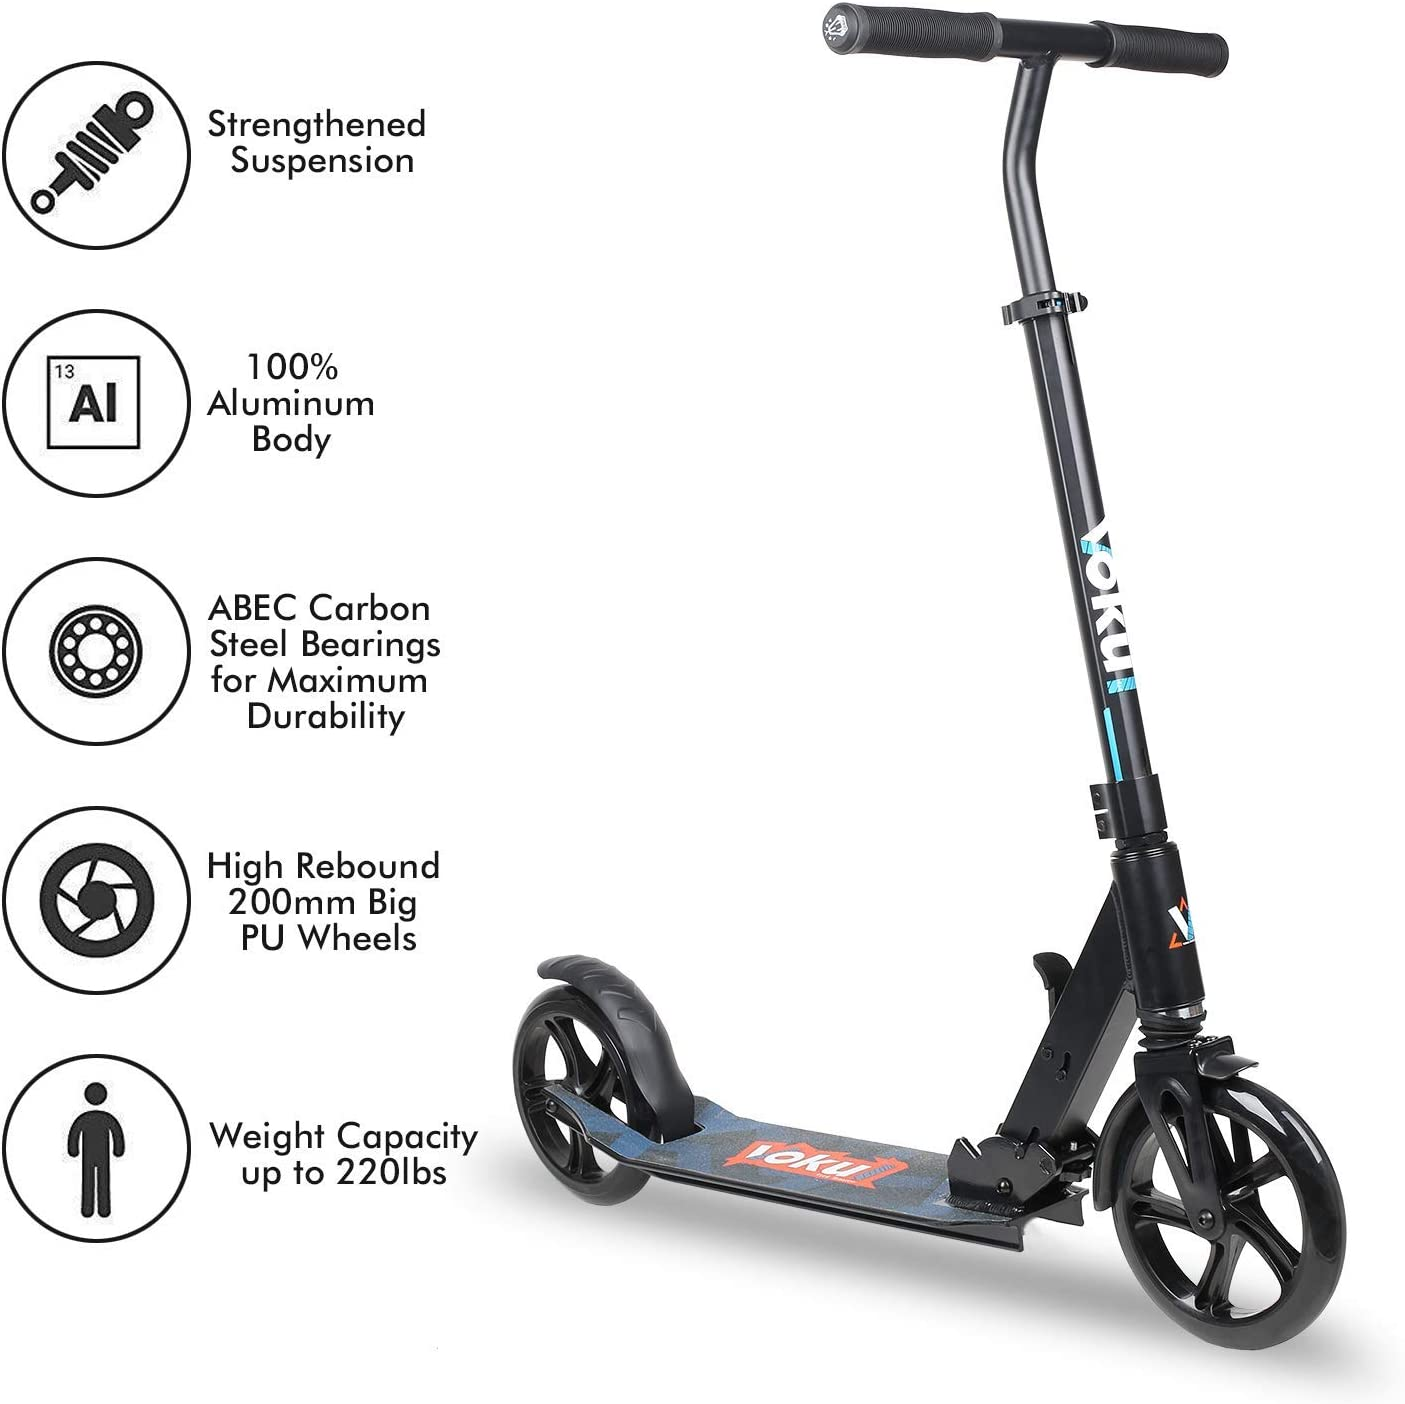 Adjustable Handlebars Range from 90-105cm; Shock Absorption System VOKUL Foldable Kick Scooters for Adults//Teens//Kids; One-Second Easy Folding Mechanism Up to 220lbs